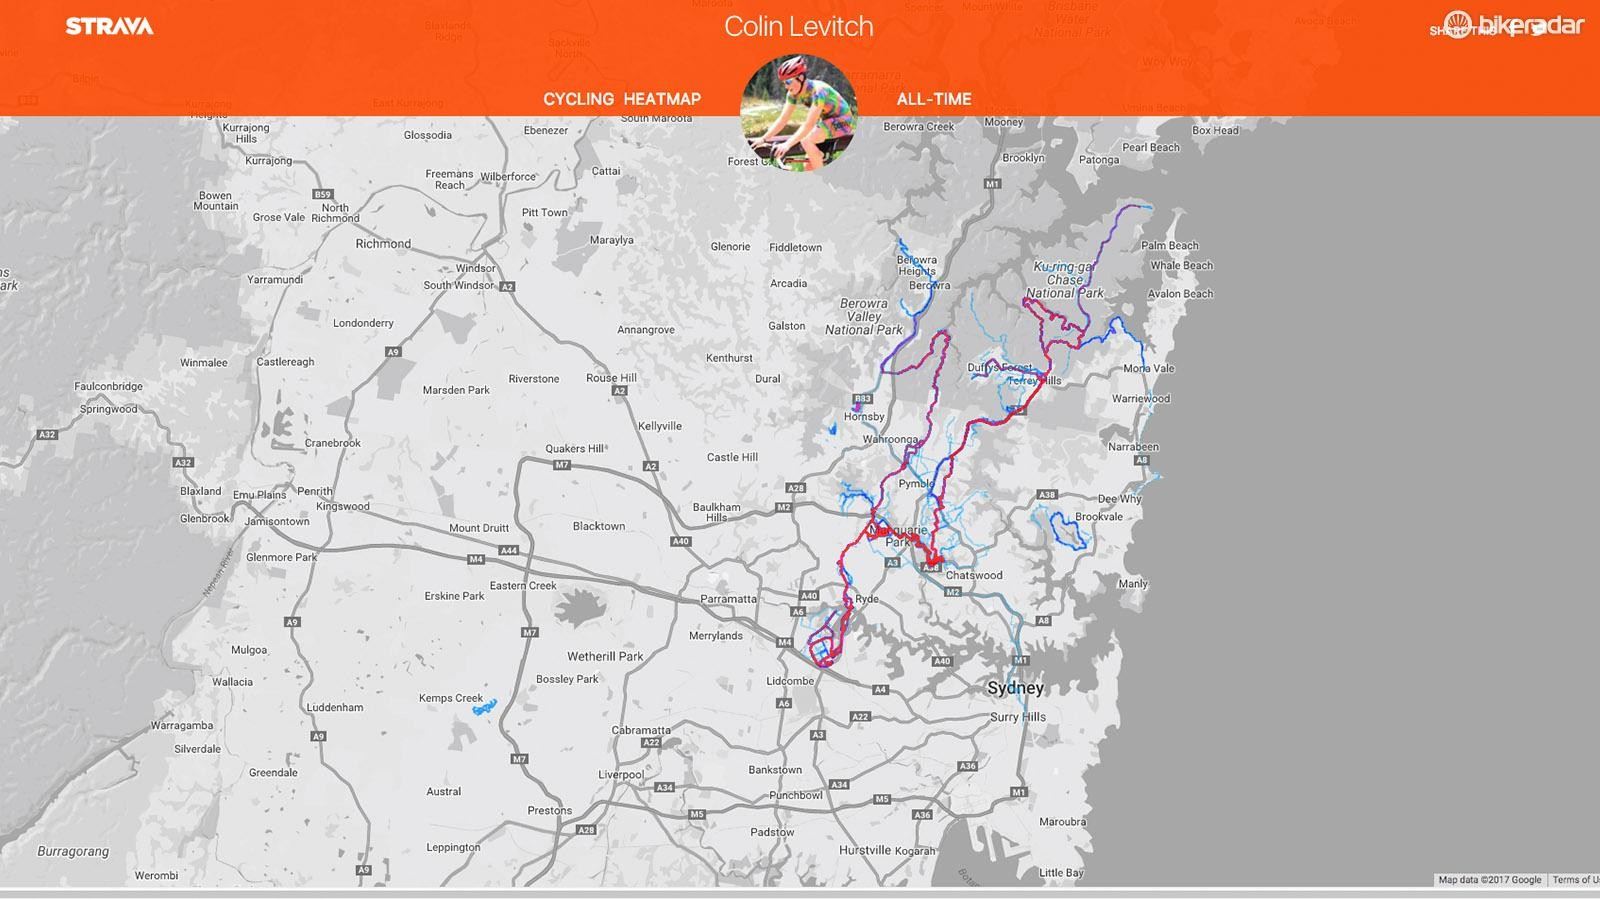 Strava Premium users can generate a personal heat map, here's mine from when I lived in Sydney